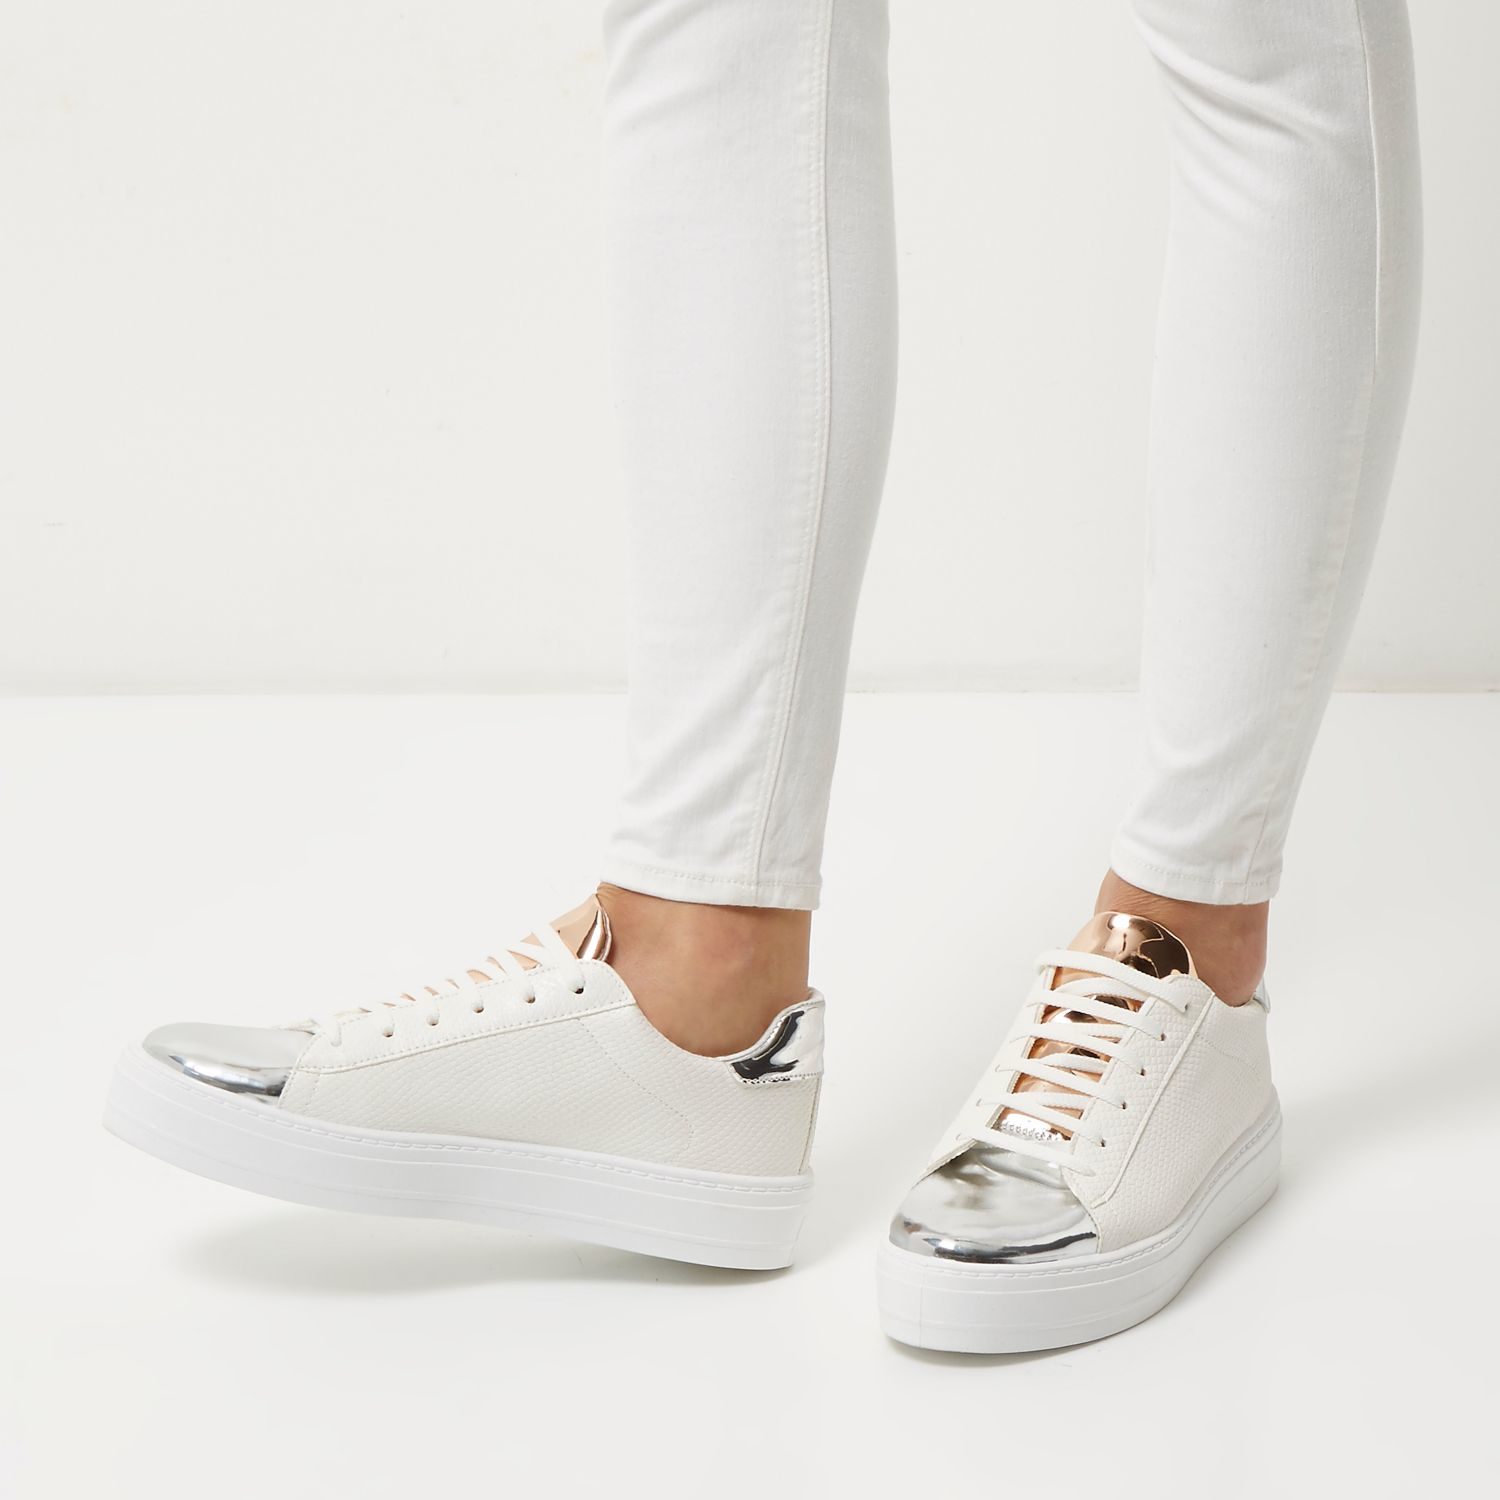 River island White Metallic Trim Platform Trainers in ...